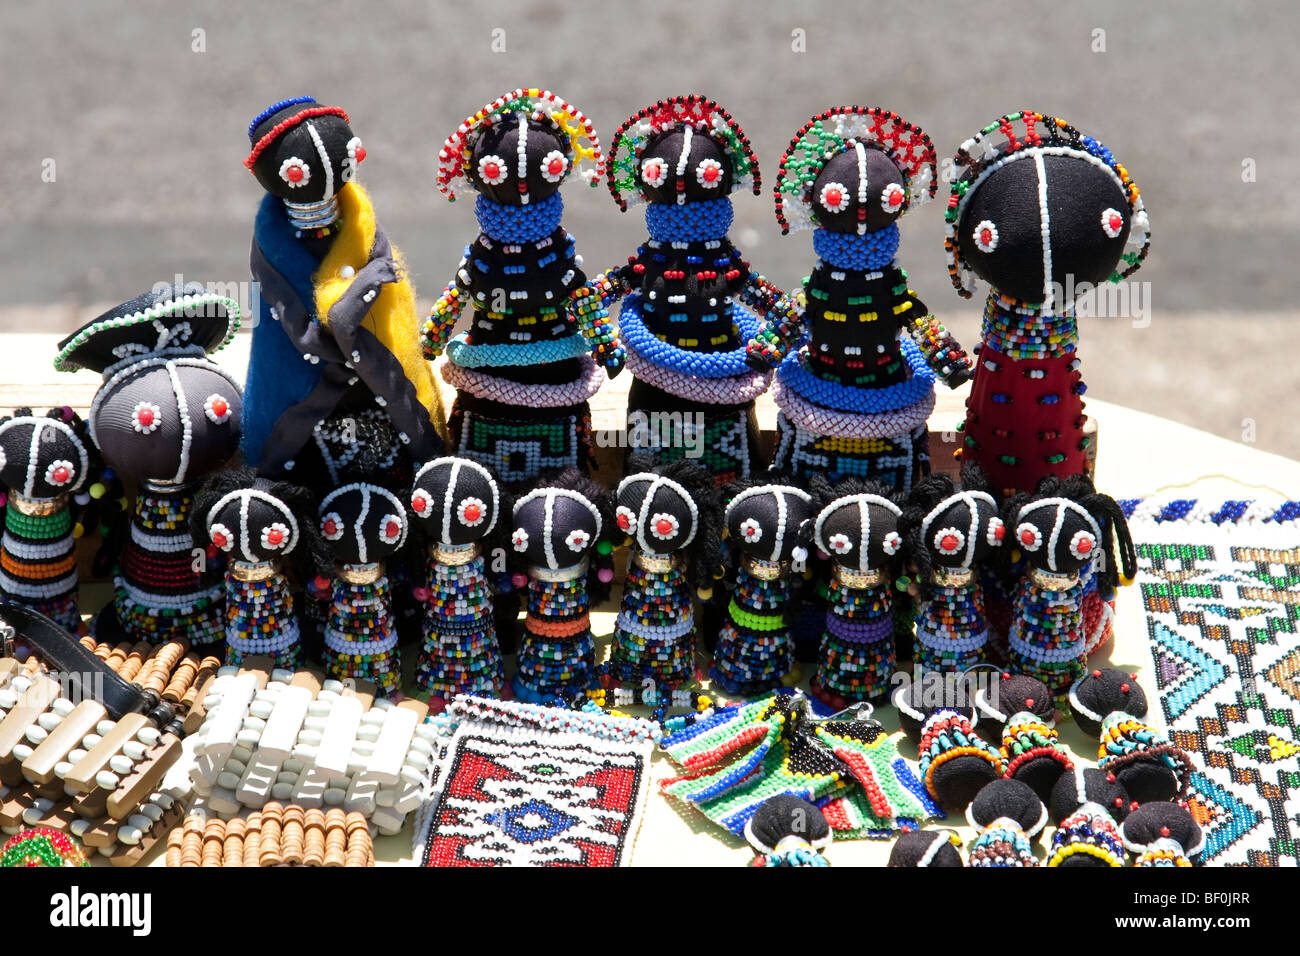 South African dolls for sale, Pretoria - Stock Image